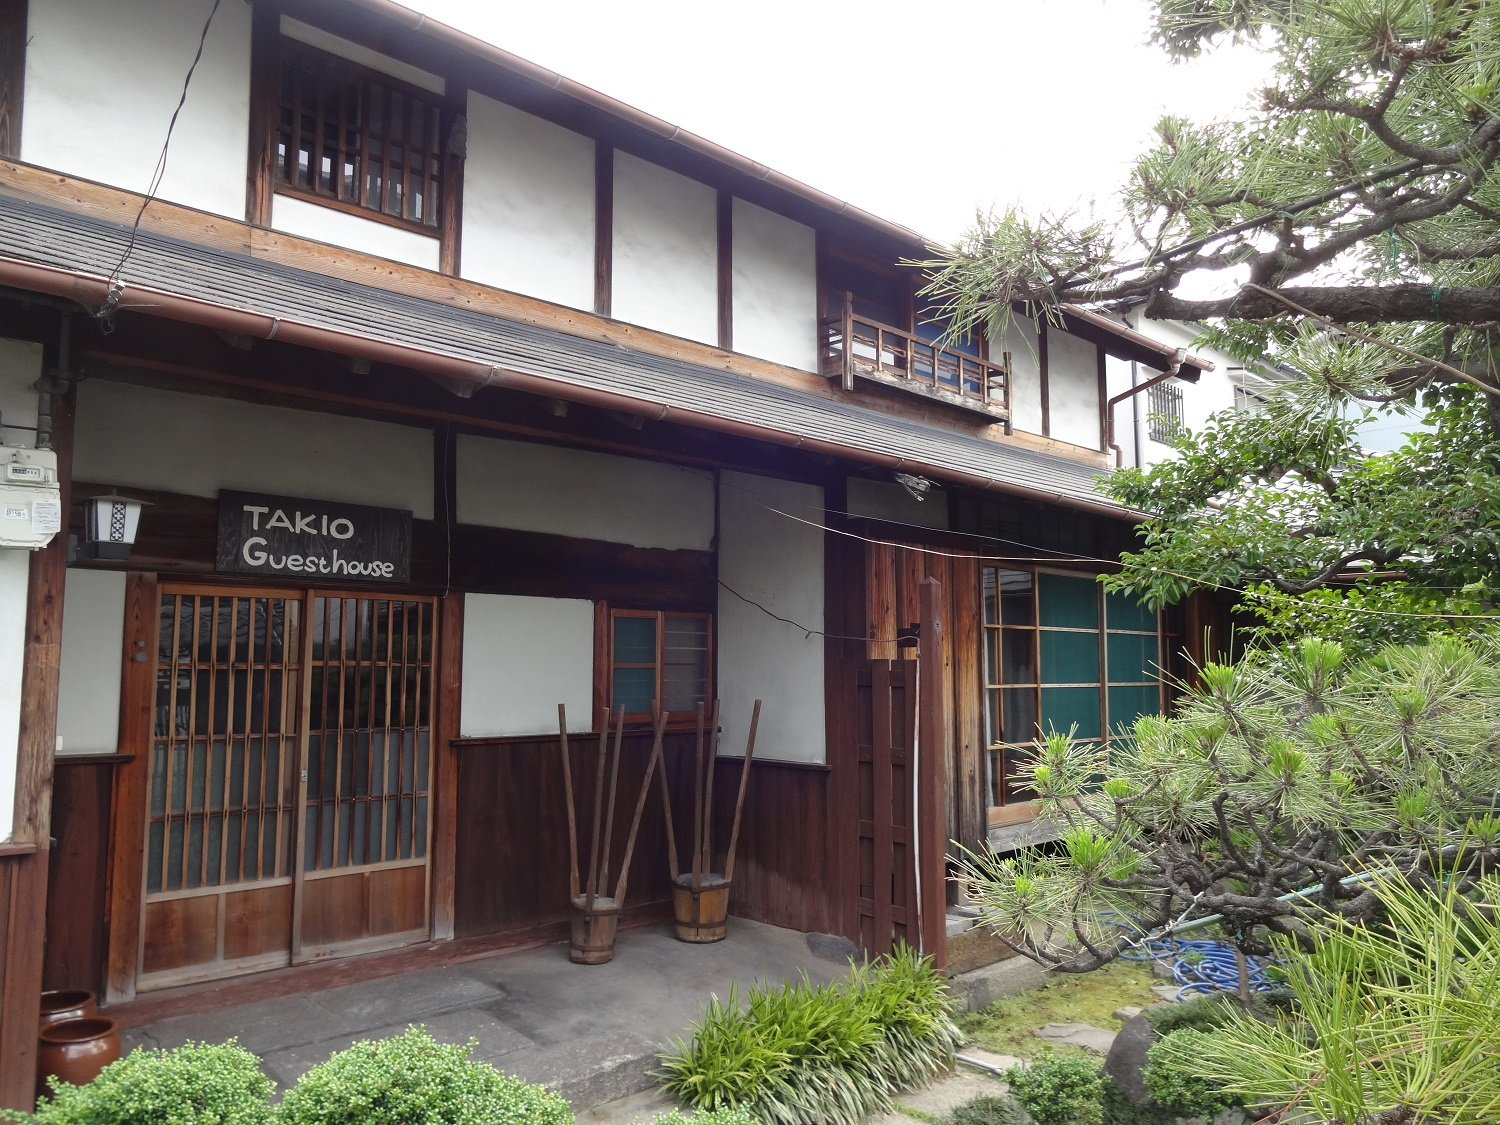 TAKIO Guest house